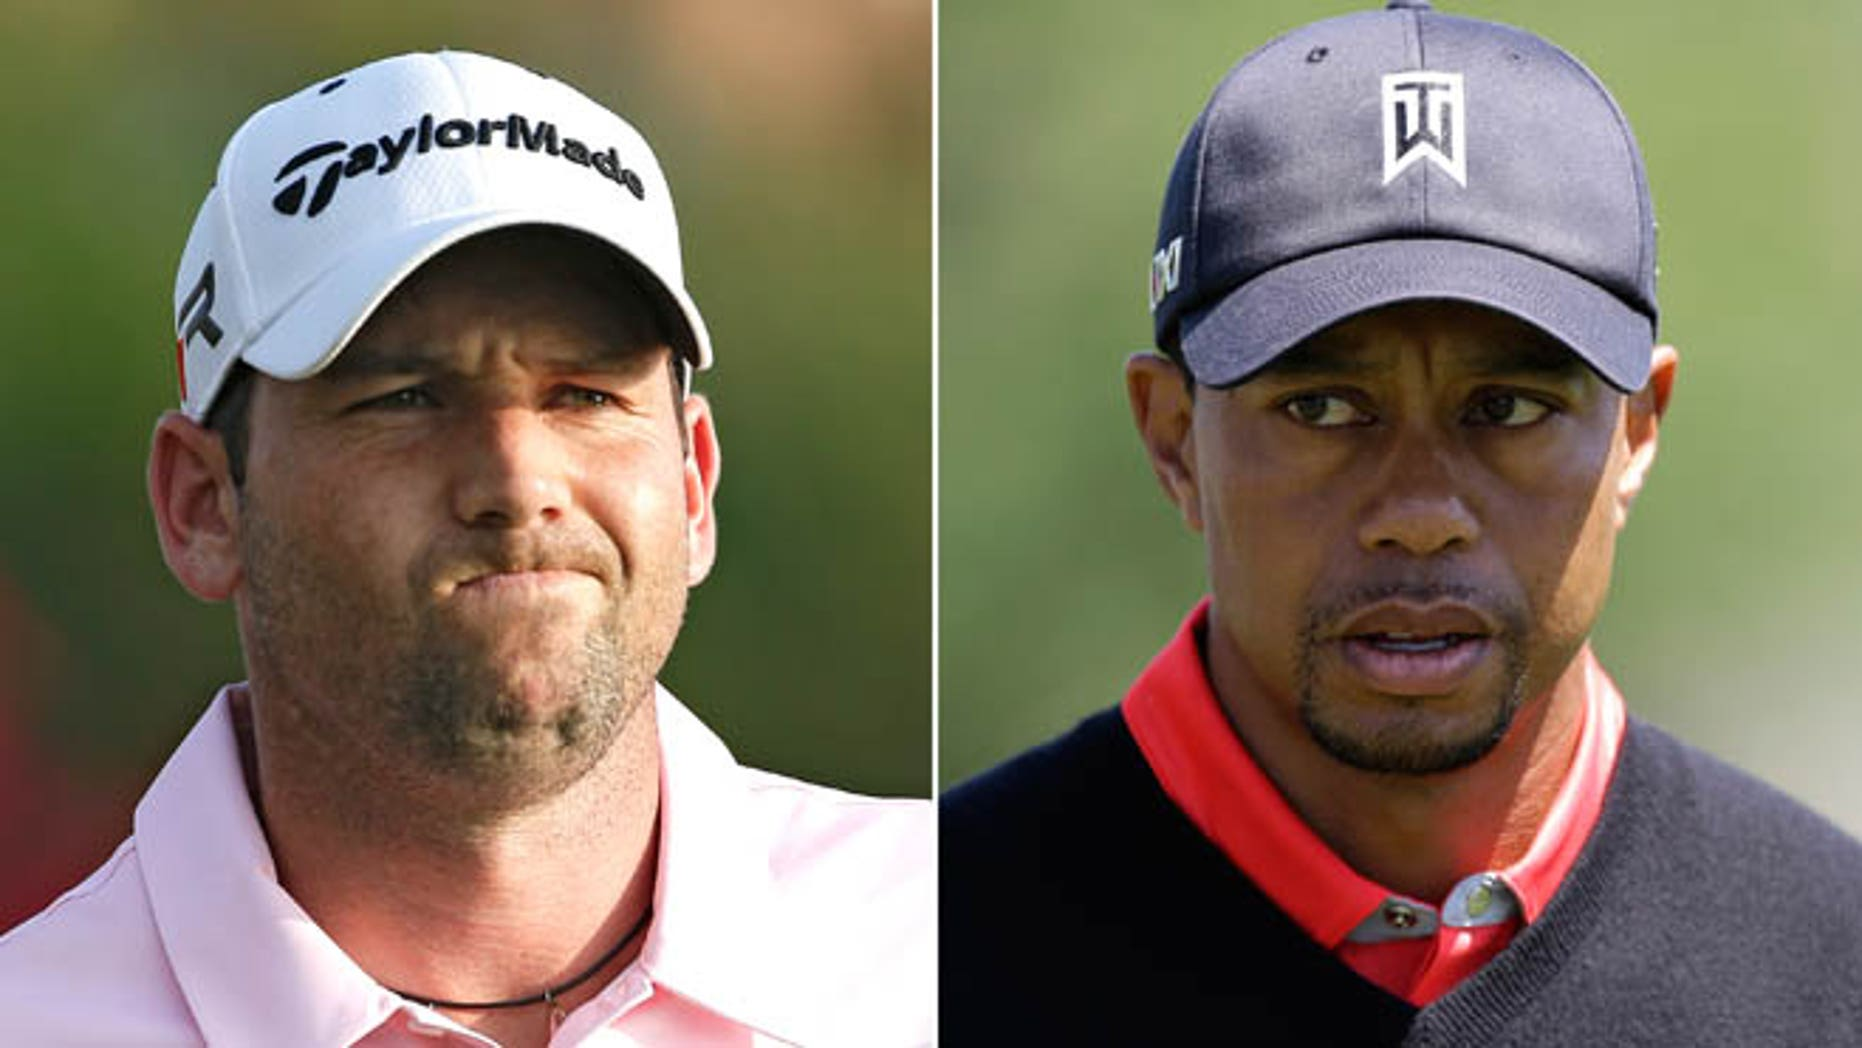 May 5, 2013: At left, in a file photo, Sergio Garcia grimaces during The Players Championshop golf tournament in Ponte Vedra Beach, Fla. At right, in a March 25, 2013 file photo, Tiger Woods walks to the 16th green during the final round of the Arnold Palmer Invitational golf tournament in Orlando, Fla. Woods and Garcia don't like each other, and are making no attempt to disguise their feelings.